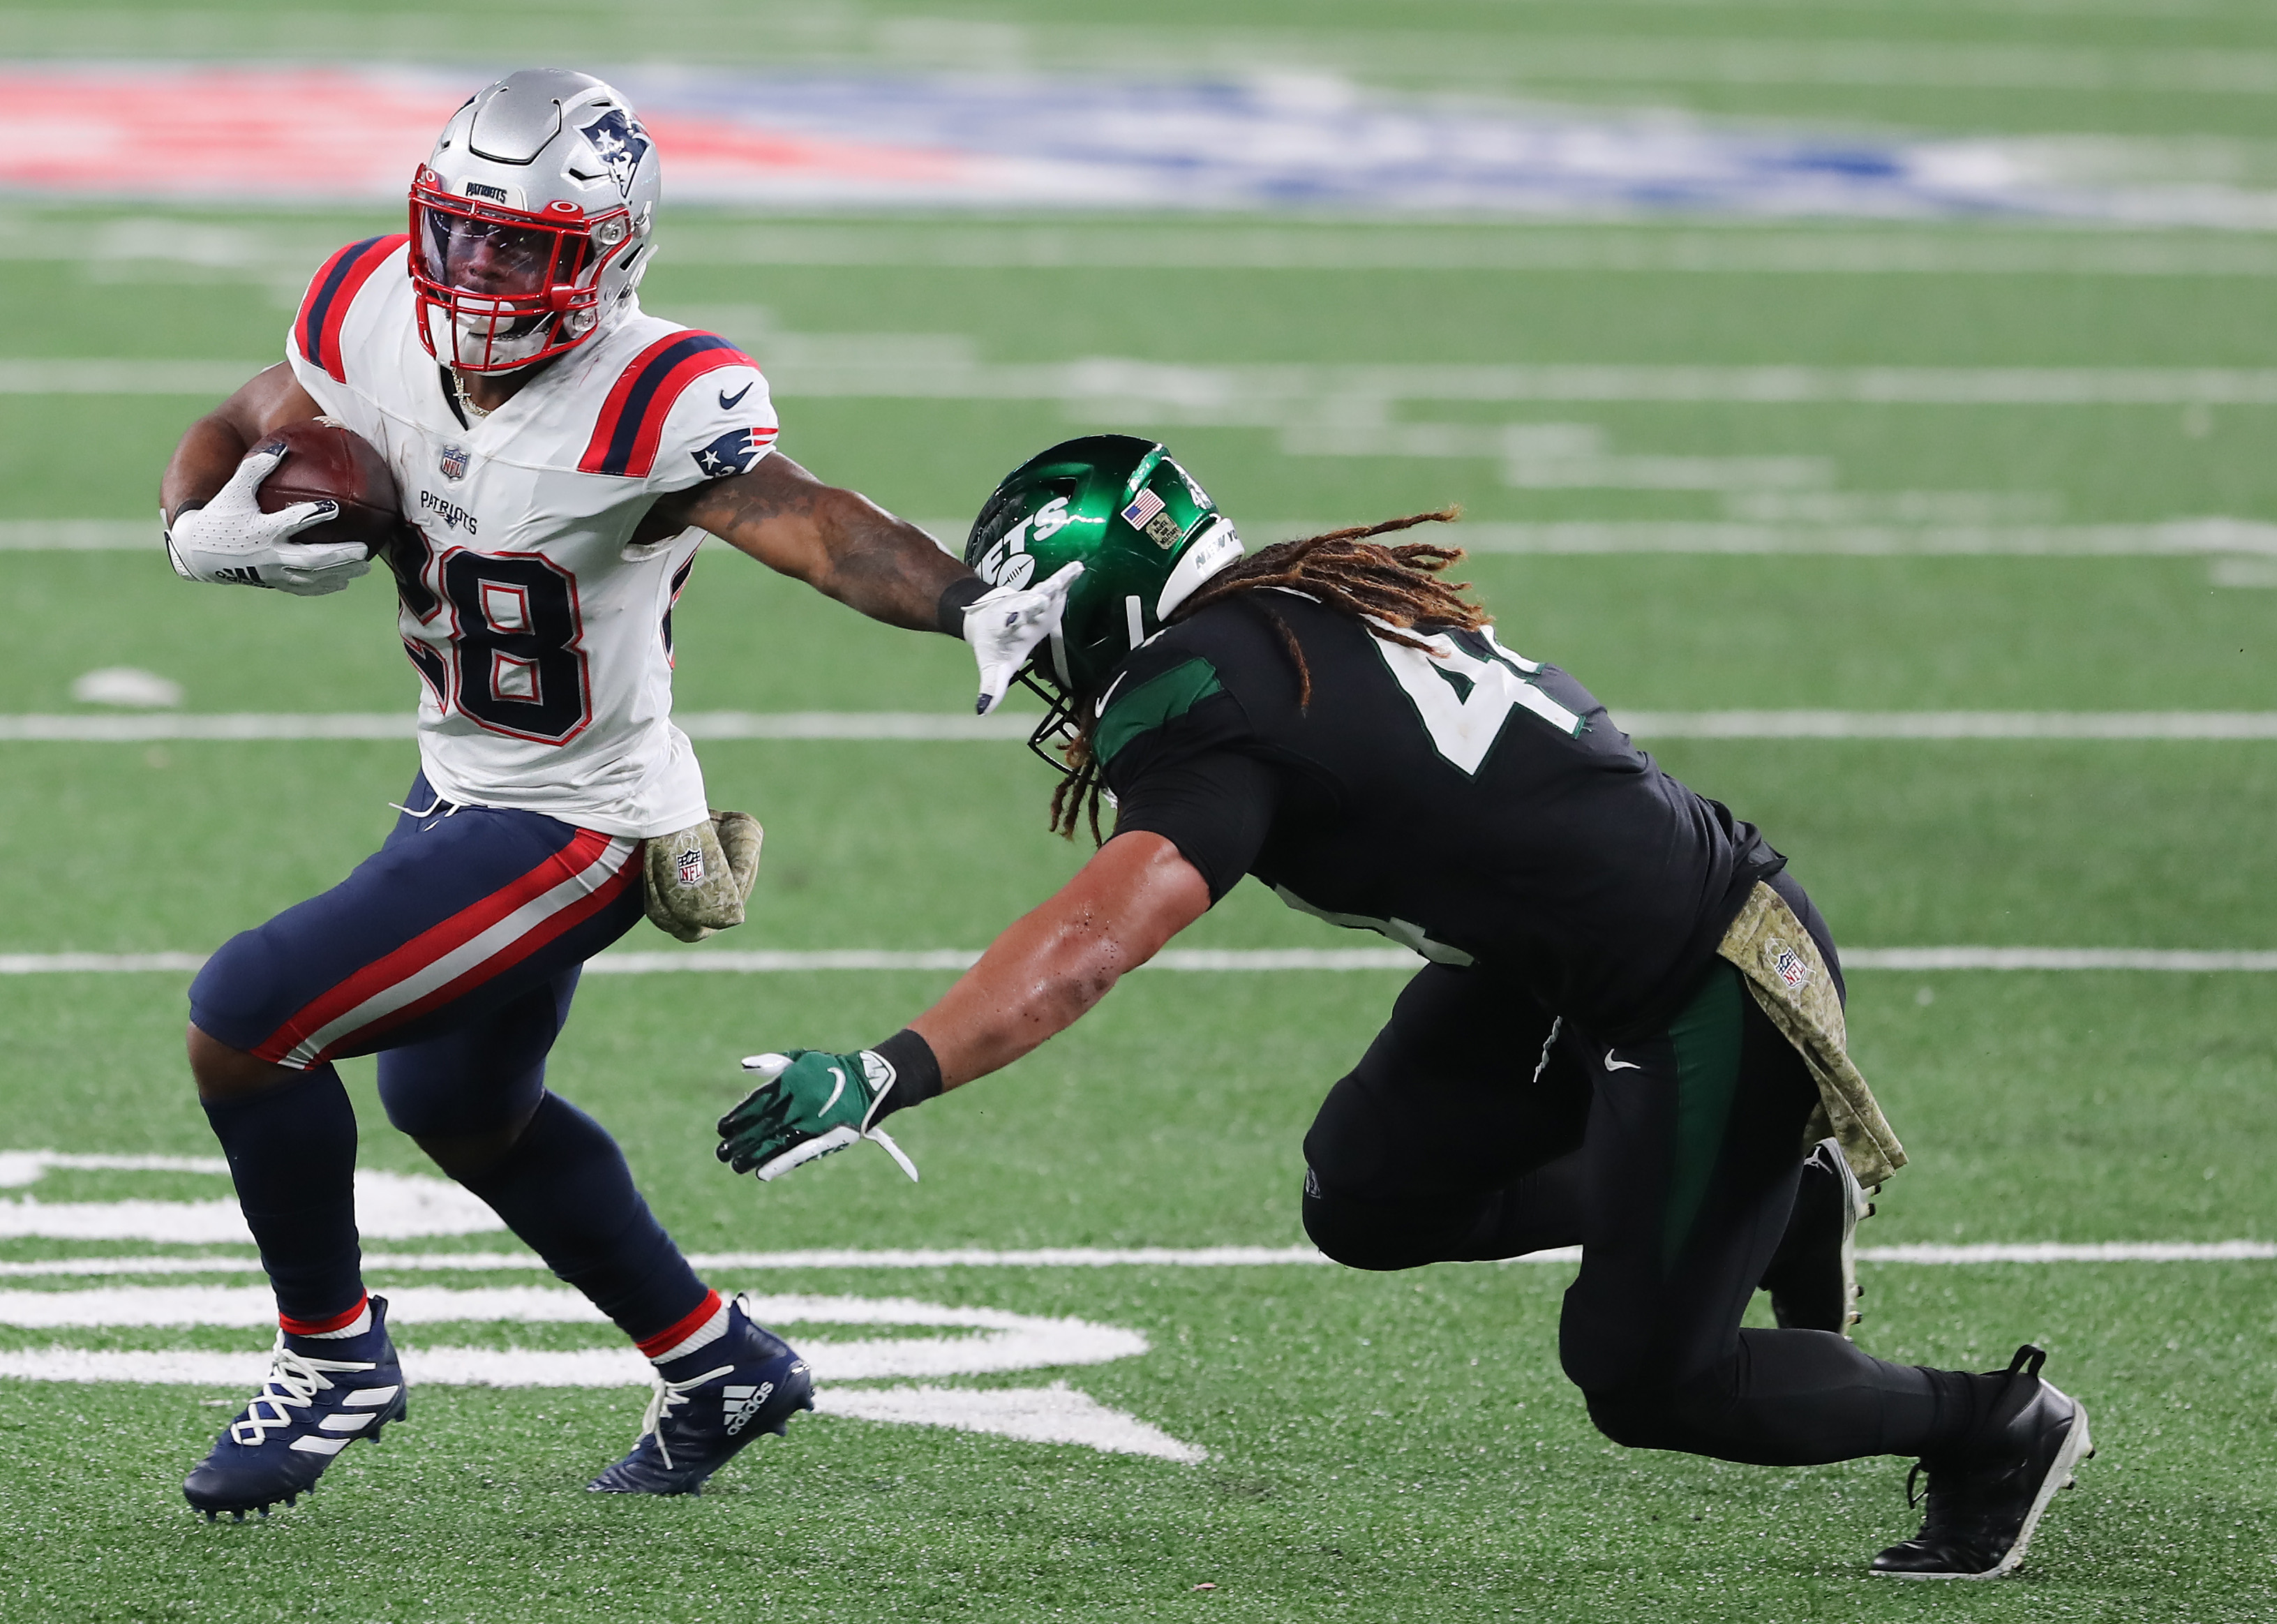 James White #28 of the New England Patriots carries the ball as Harvey Langi #44 of the New York Jets defends during the second half at MetLife Stadium on November 09, 2020 in East Rutherford, New Jersey